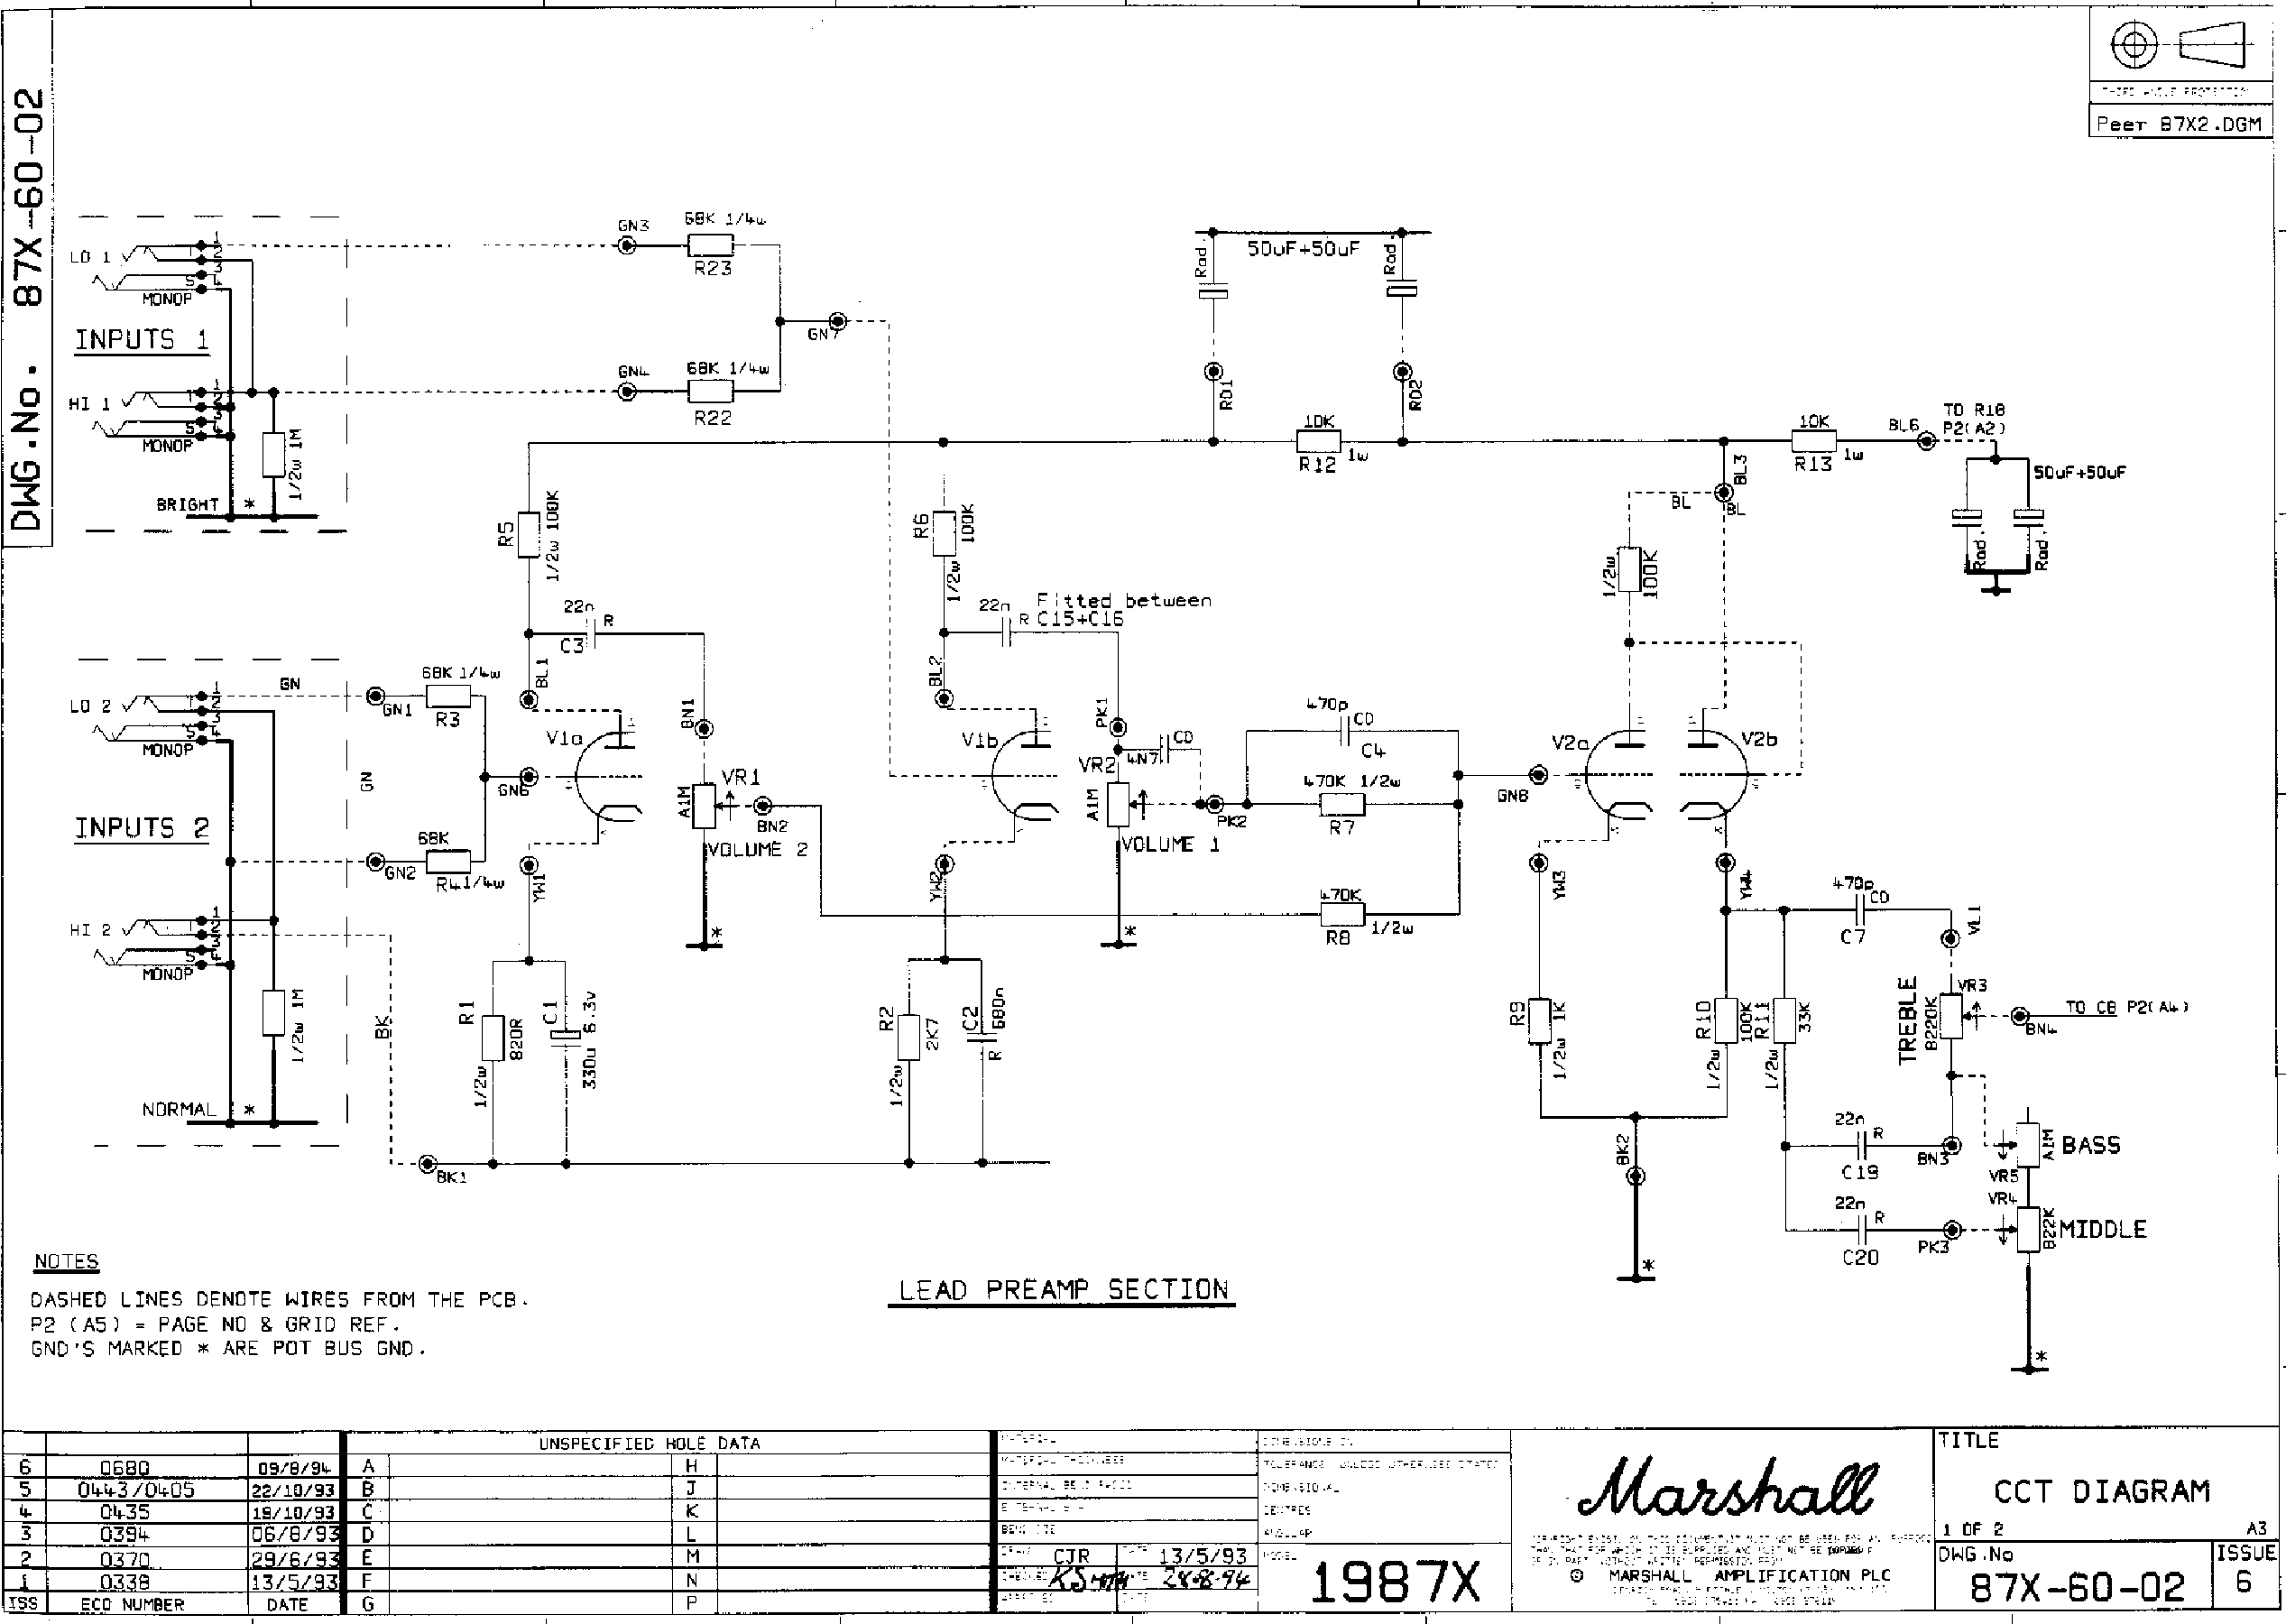 1987x Question